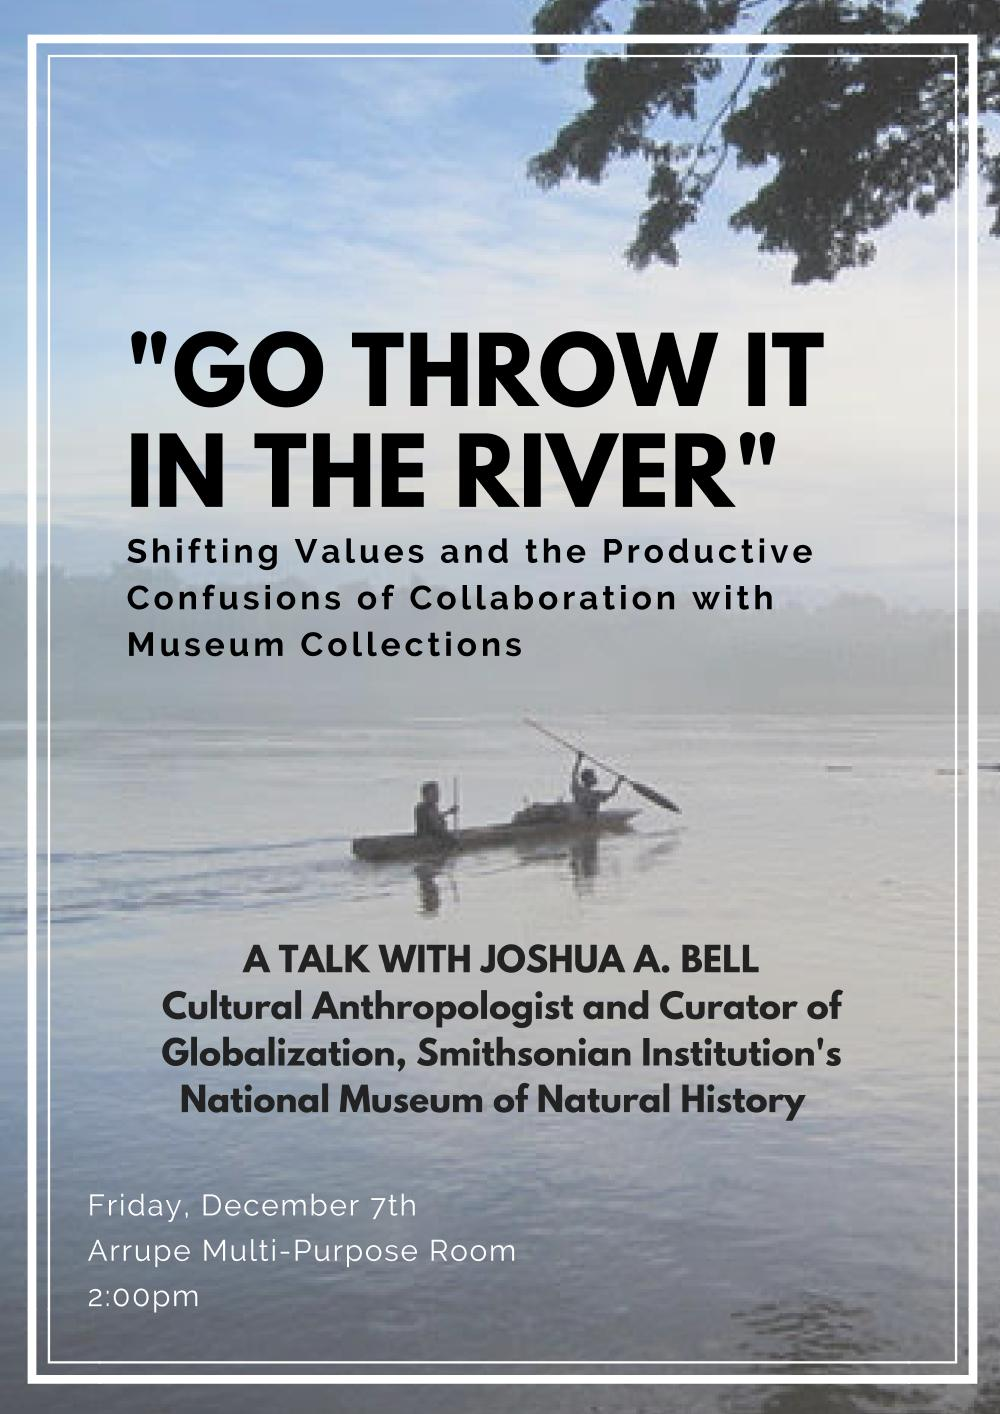 Flyer for Go Throw It In The River Lecture featuring image of a canoe at a distance